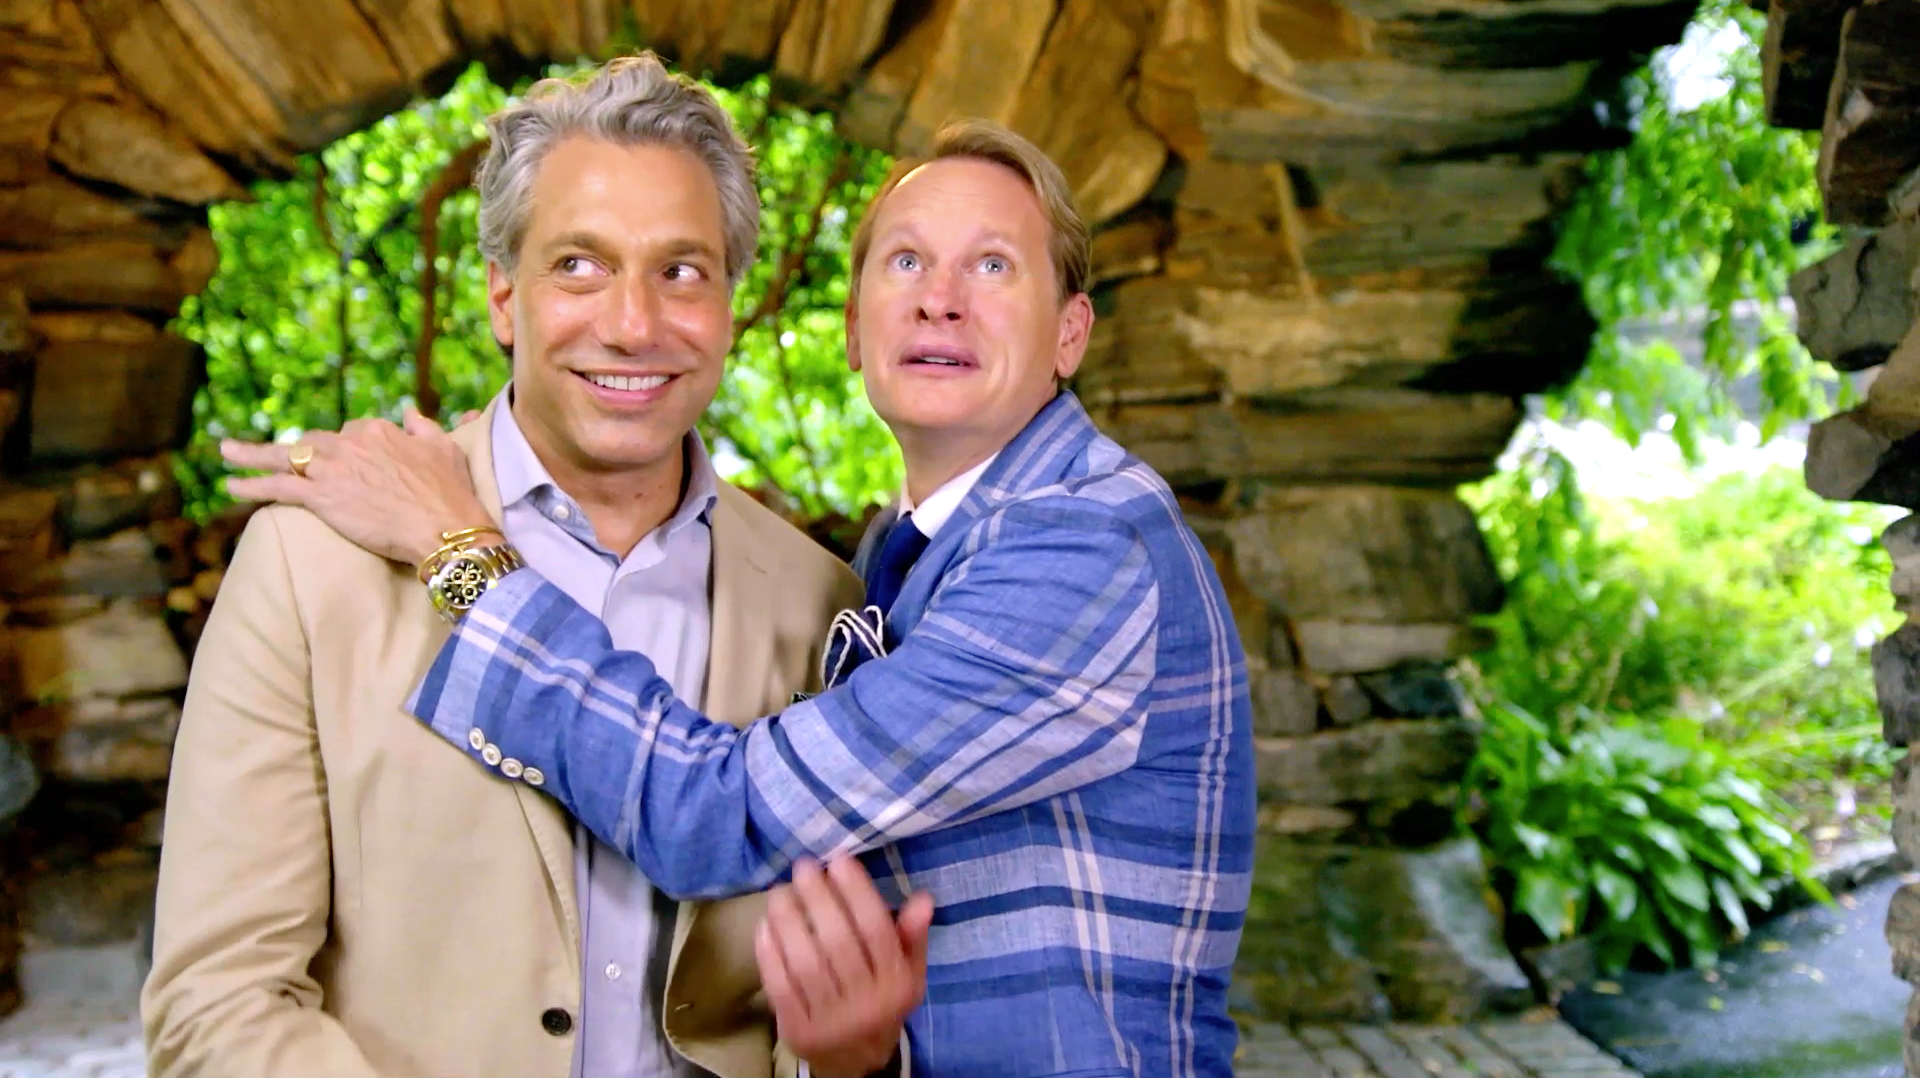 Are Carson Kressley and Thom Filicia Working in a Haunted House?